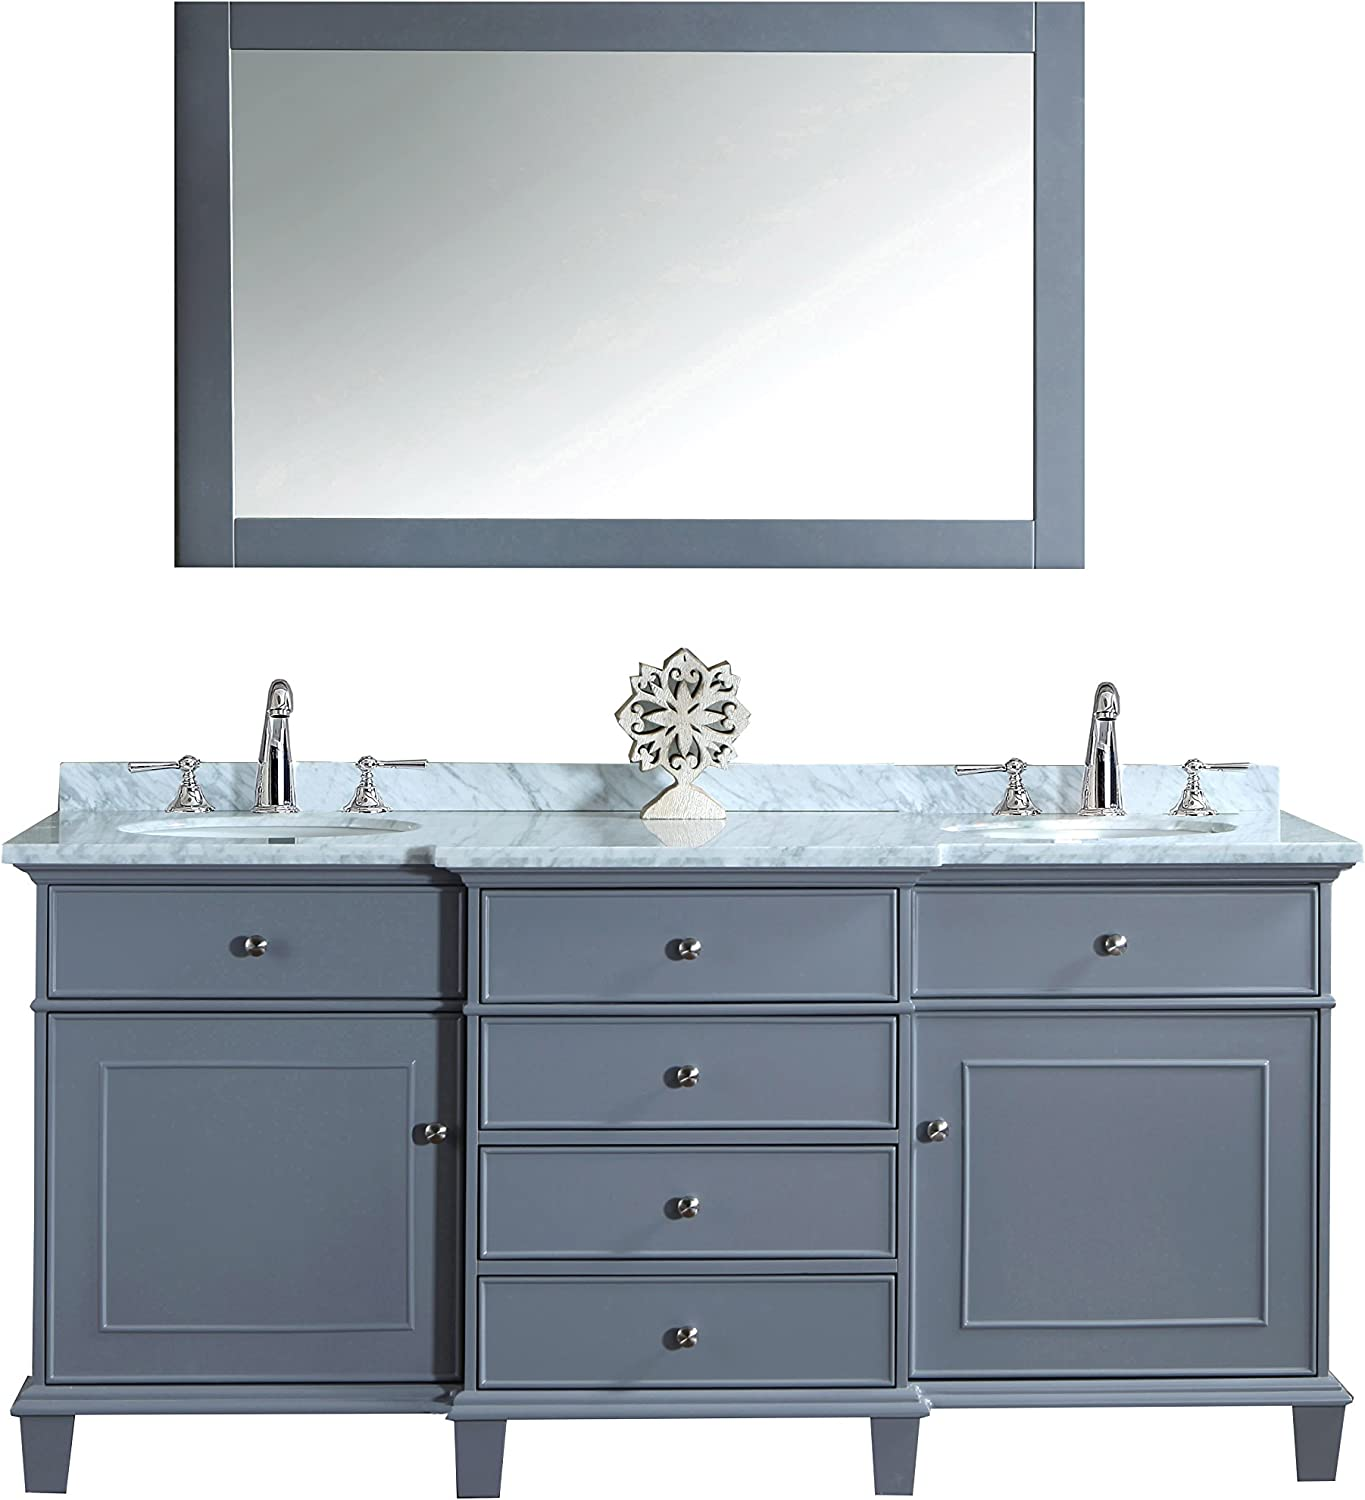 Krugg LED Bathroom Round Mirror 27 Inch Diameter Lighted Vanity Mirror Includes Dimmer and Defogger Silver Backed Glass